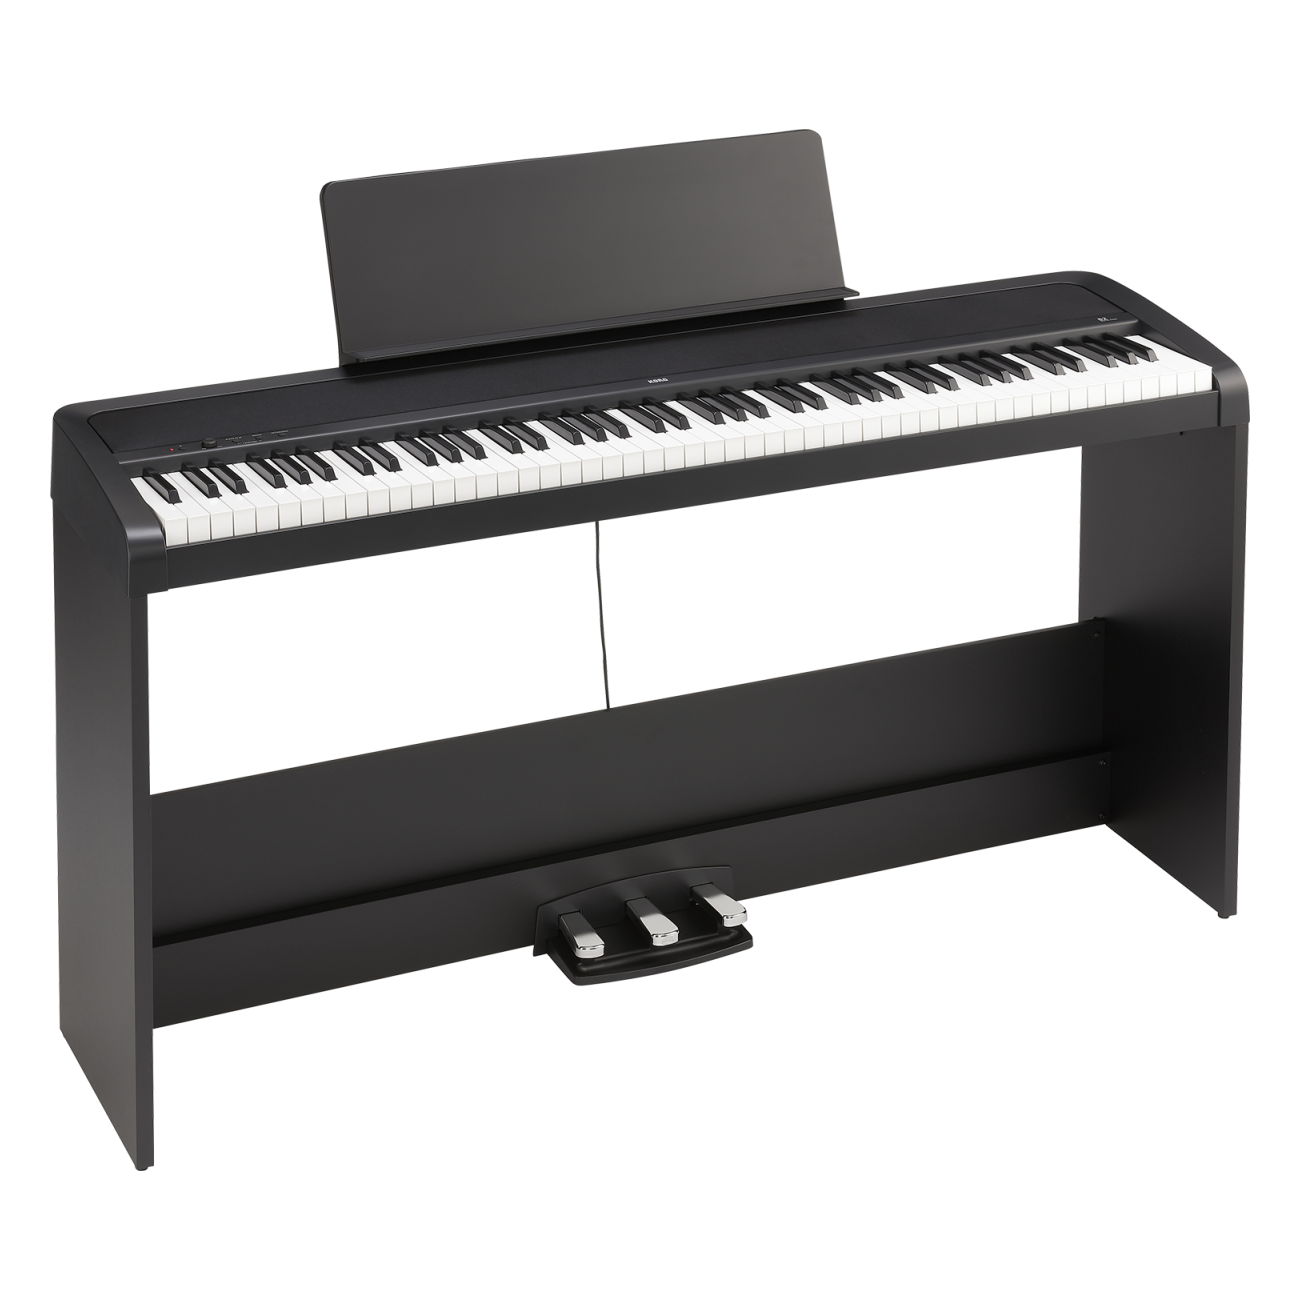 Korg - Concert Series - B2SP Digital Pianos